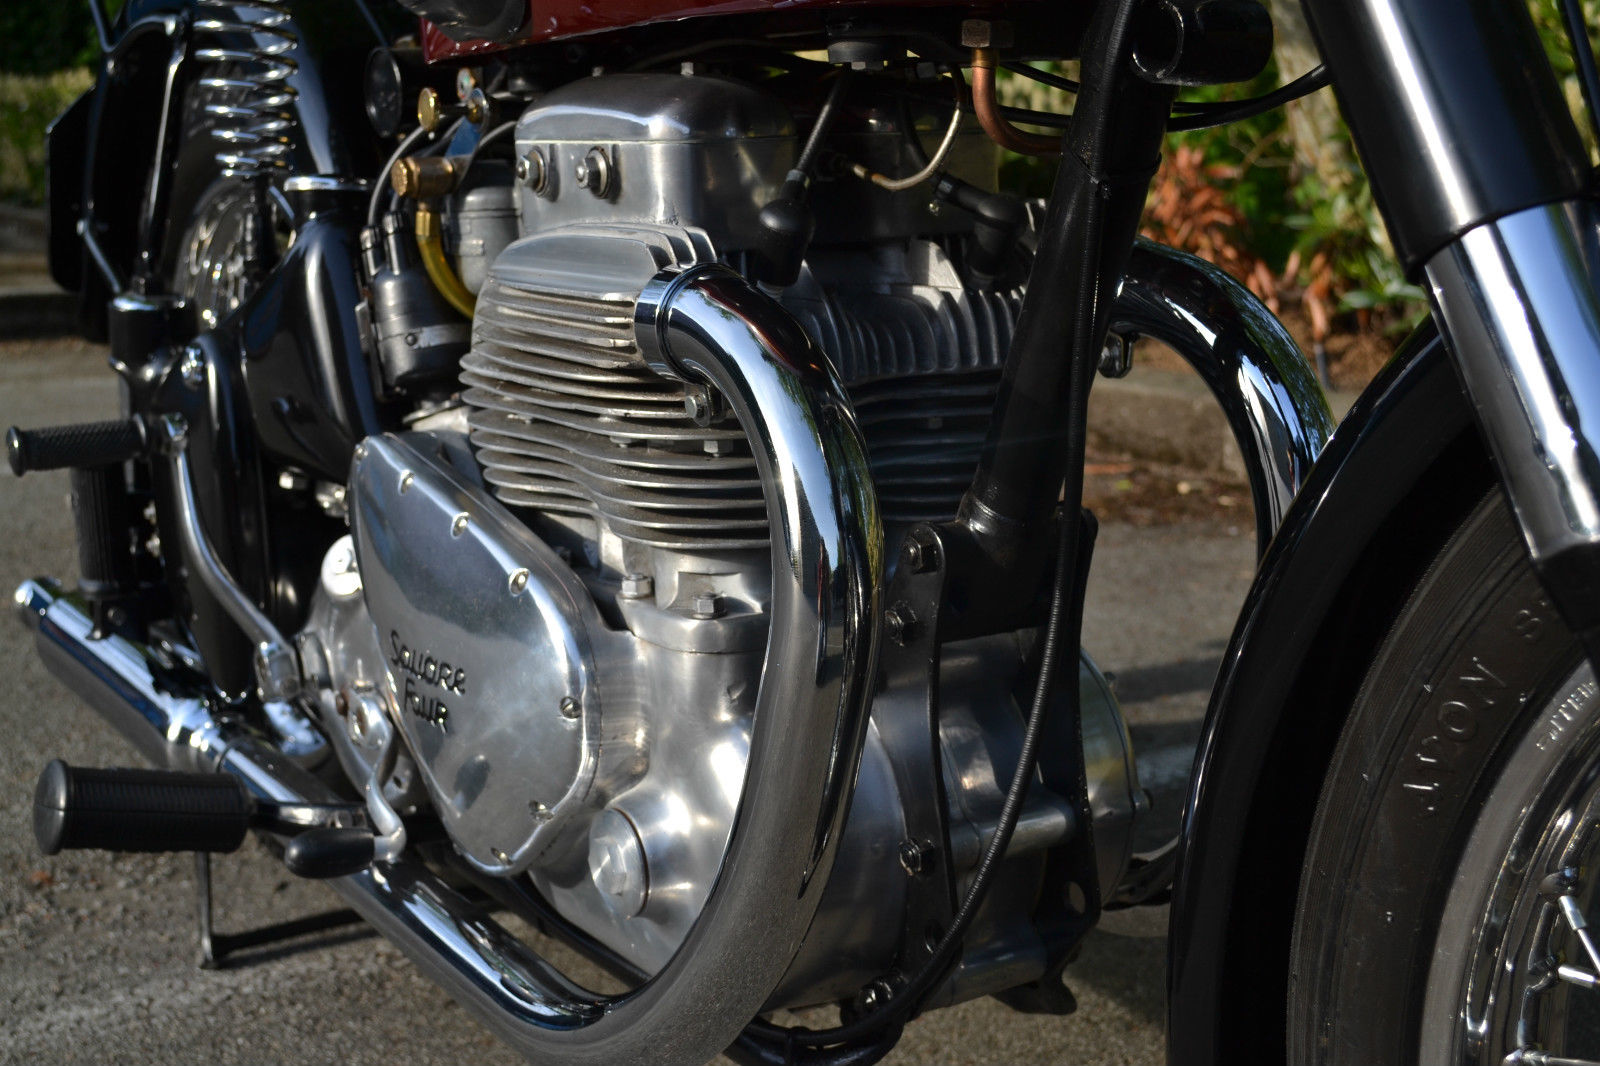 Ariel Square Four - 1952 - Motor and Transmission, Exhaust Downpipes and Cylinders.